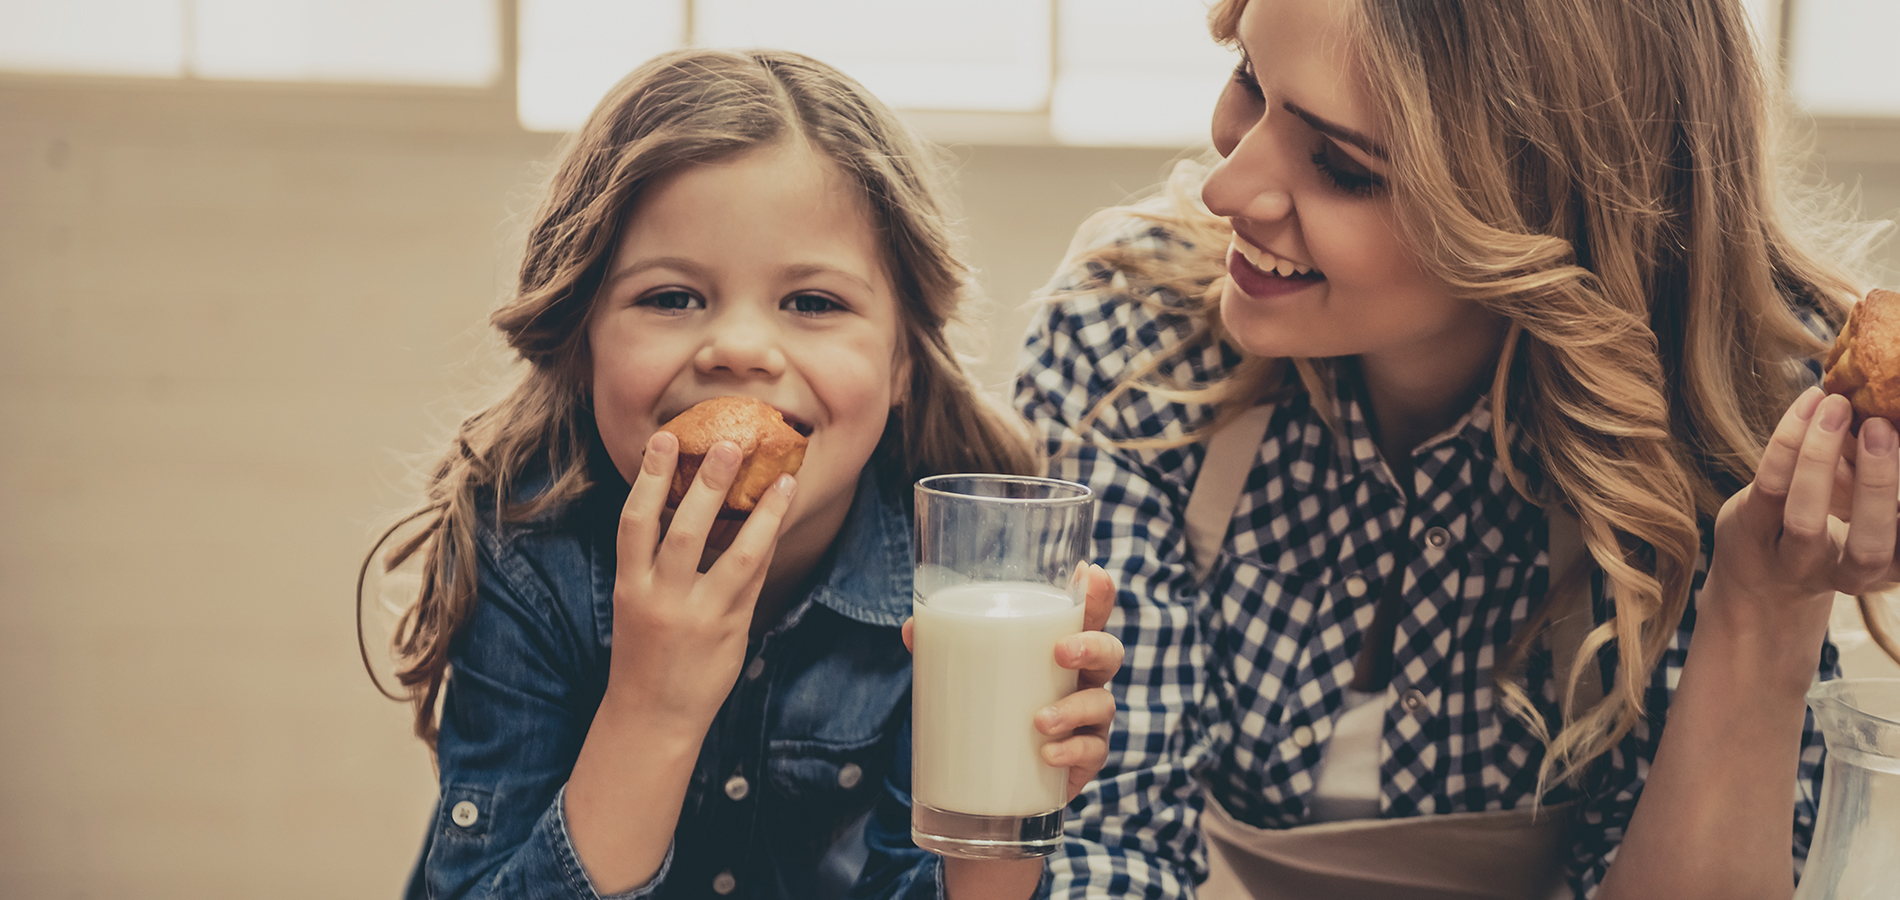 mother and daughter eating cookies and drinking milk